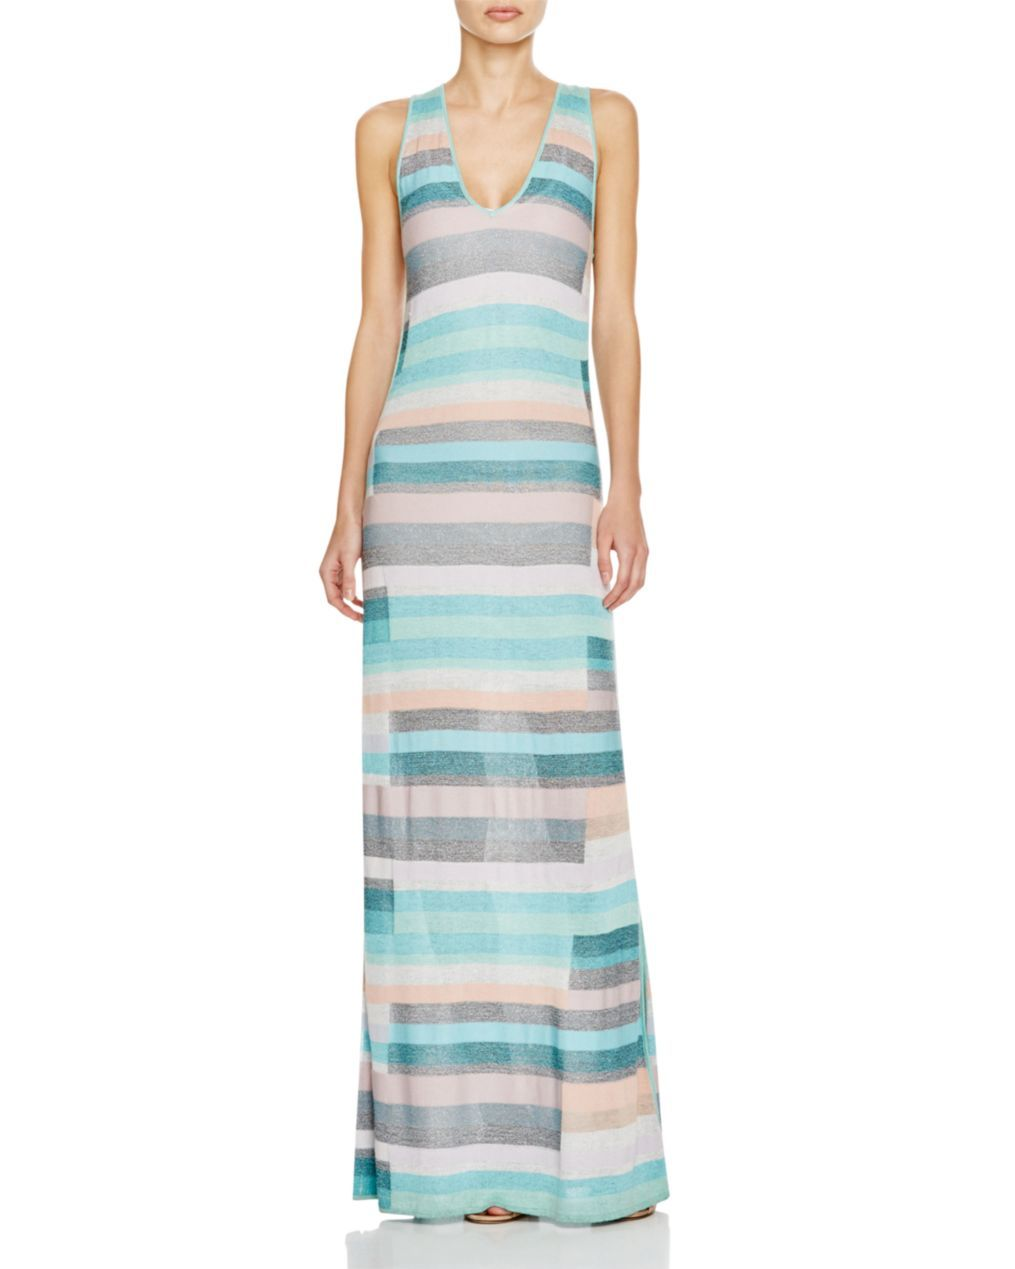 Stunning Maxi Dresses For Weddings Guests Ideas - Wedding Ideas ...